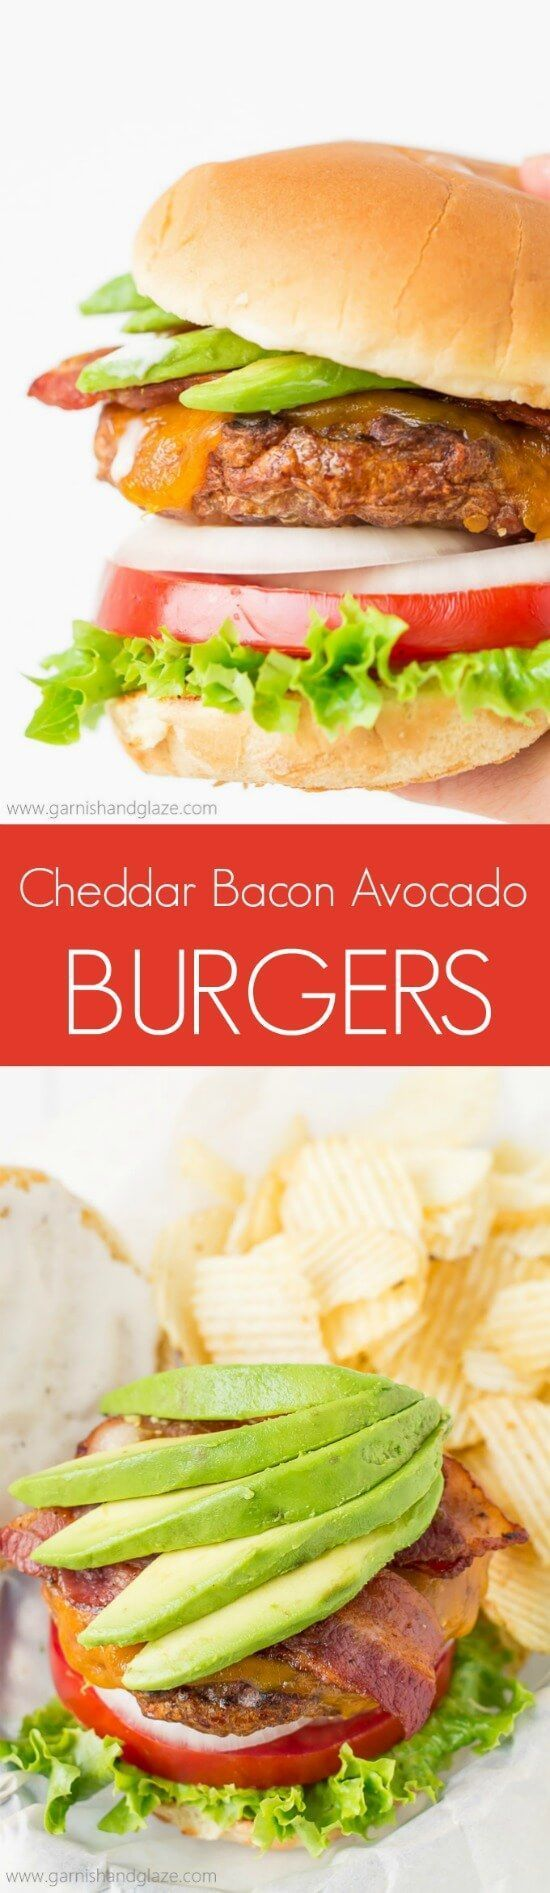 Fire up the grill and celebrate National Burger Day with these flavor packed Cheddar Bacon Avocado Burgers! /jvillesausage/ #ad